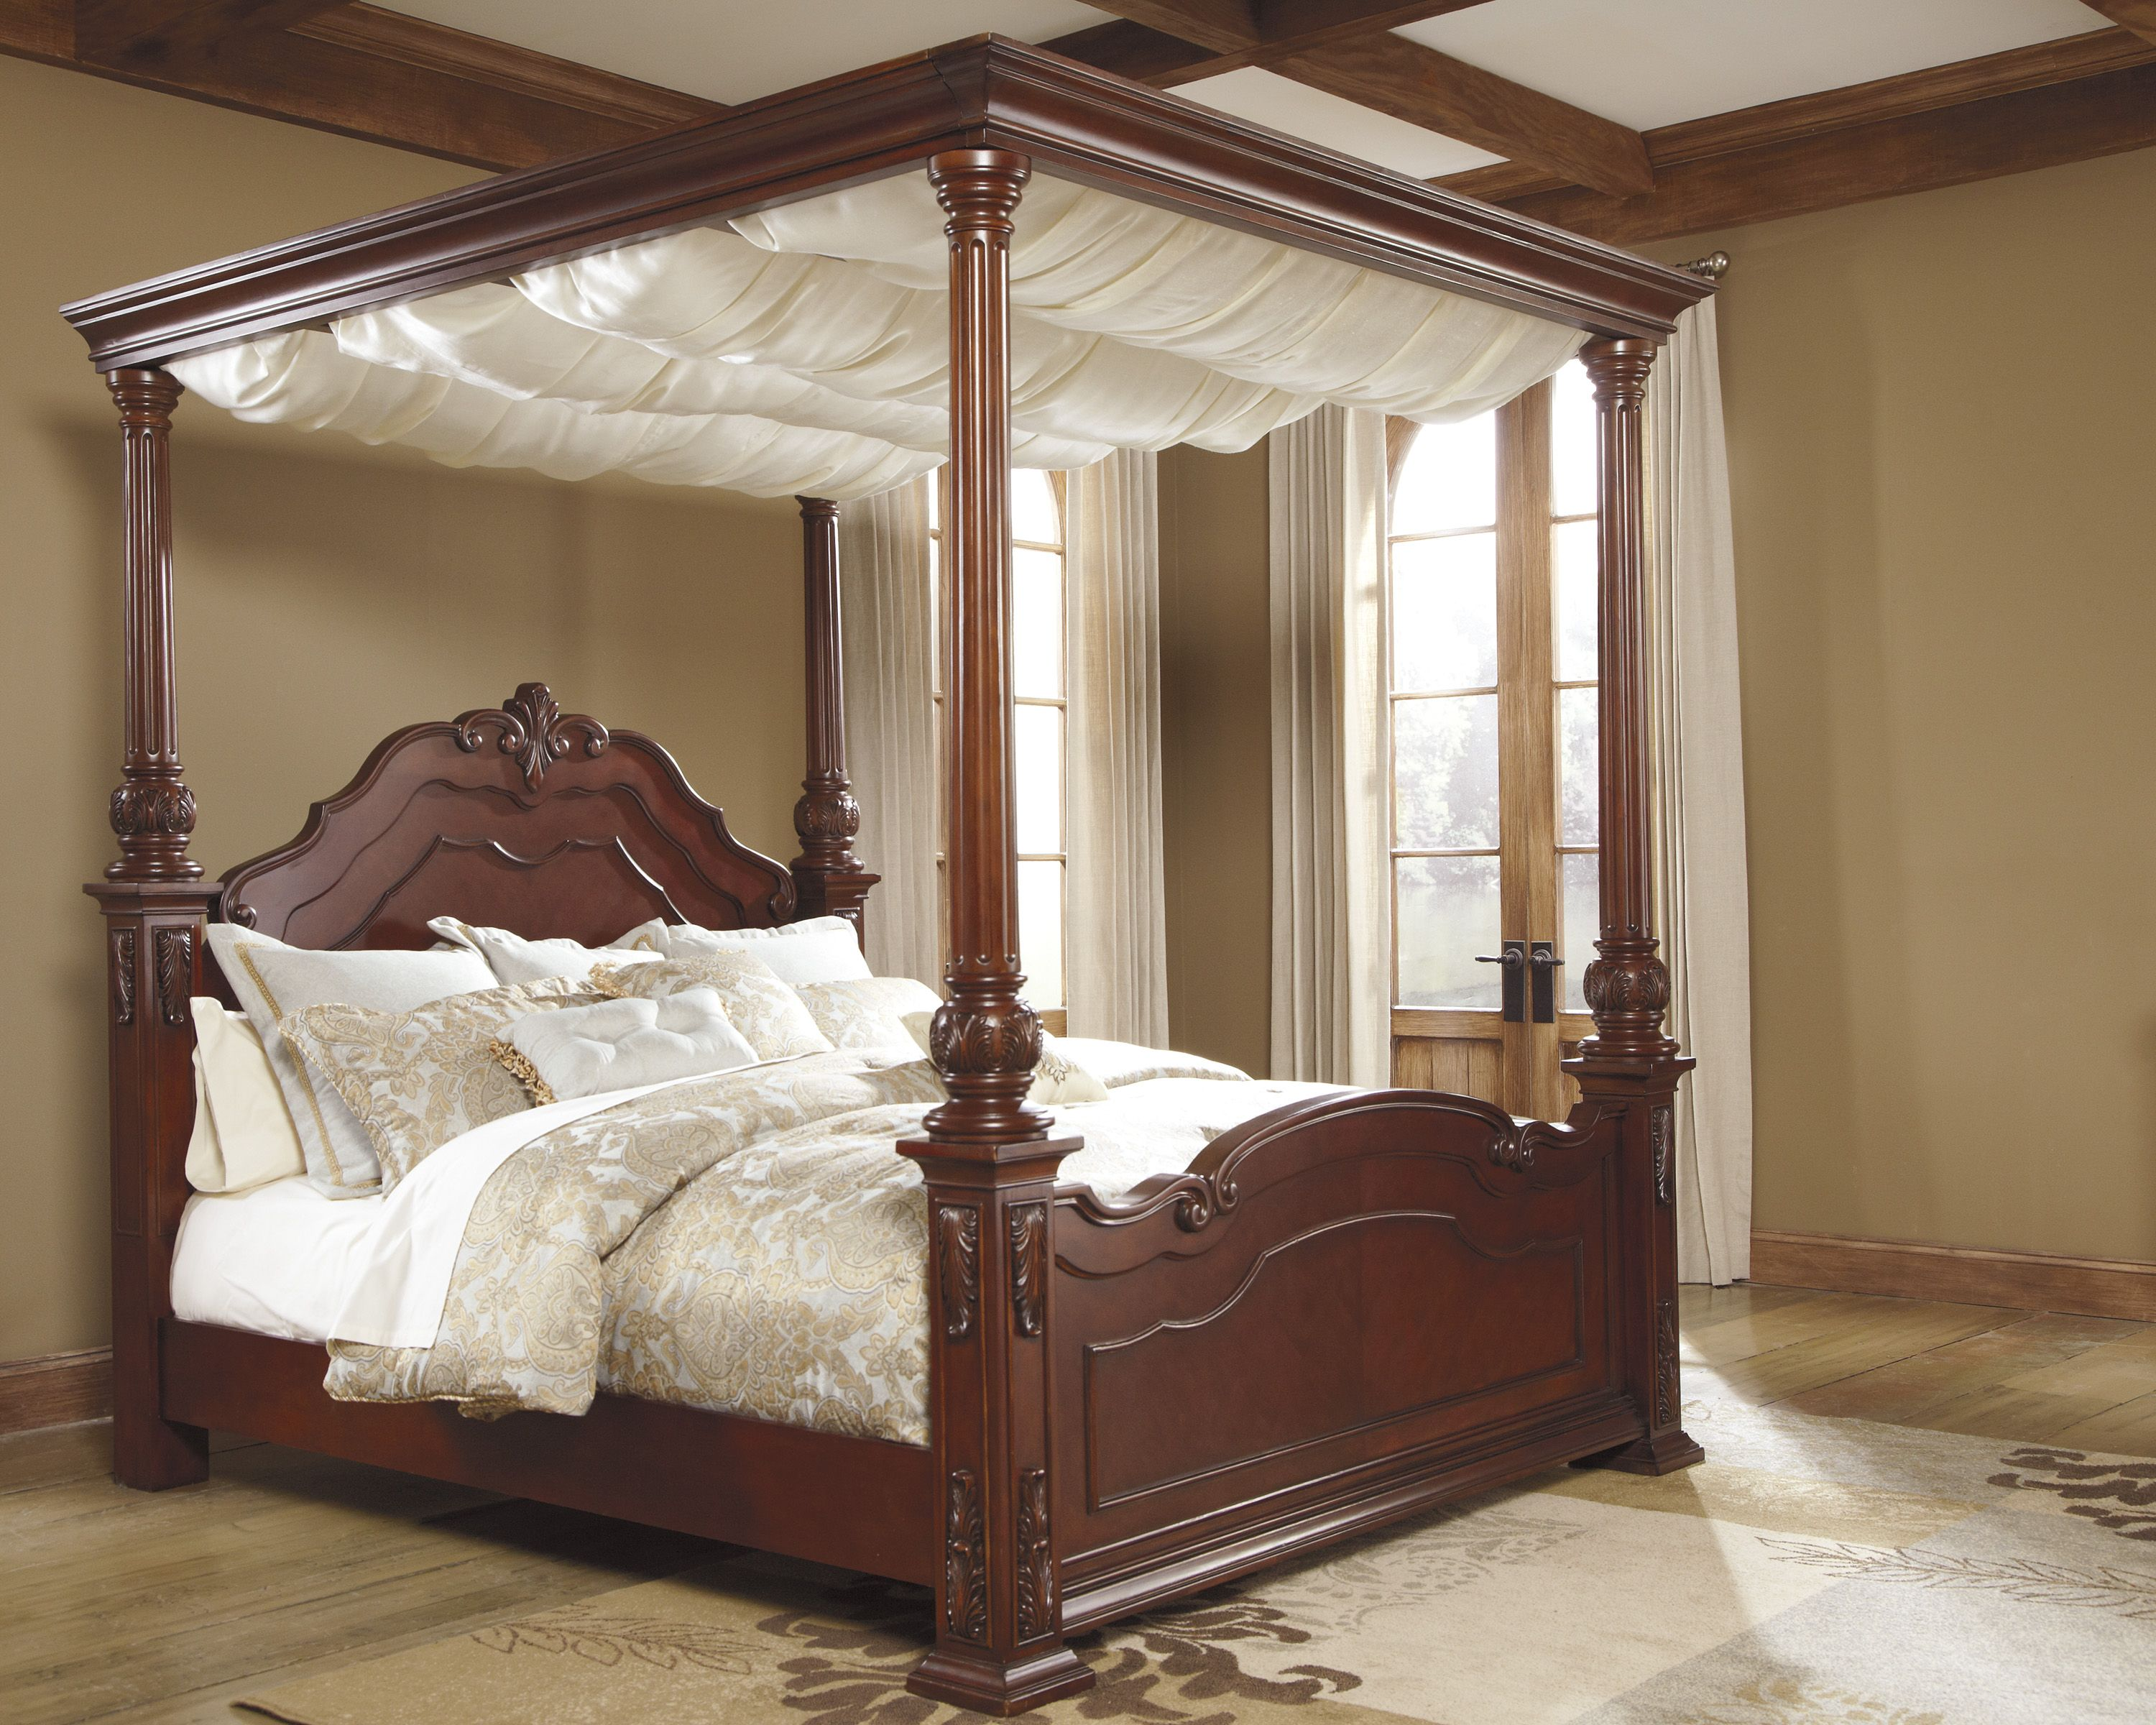 Poster Bed With Canopy buy signature designashley b698-50,b698-72,b698-99 beds online